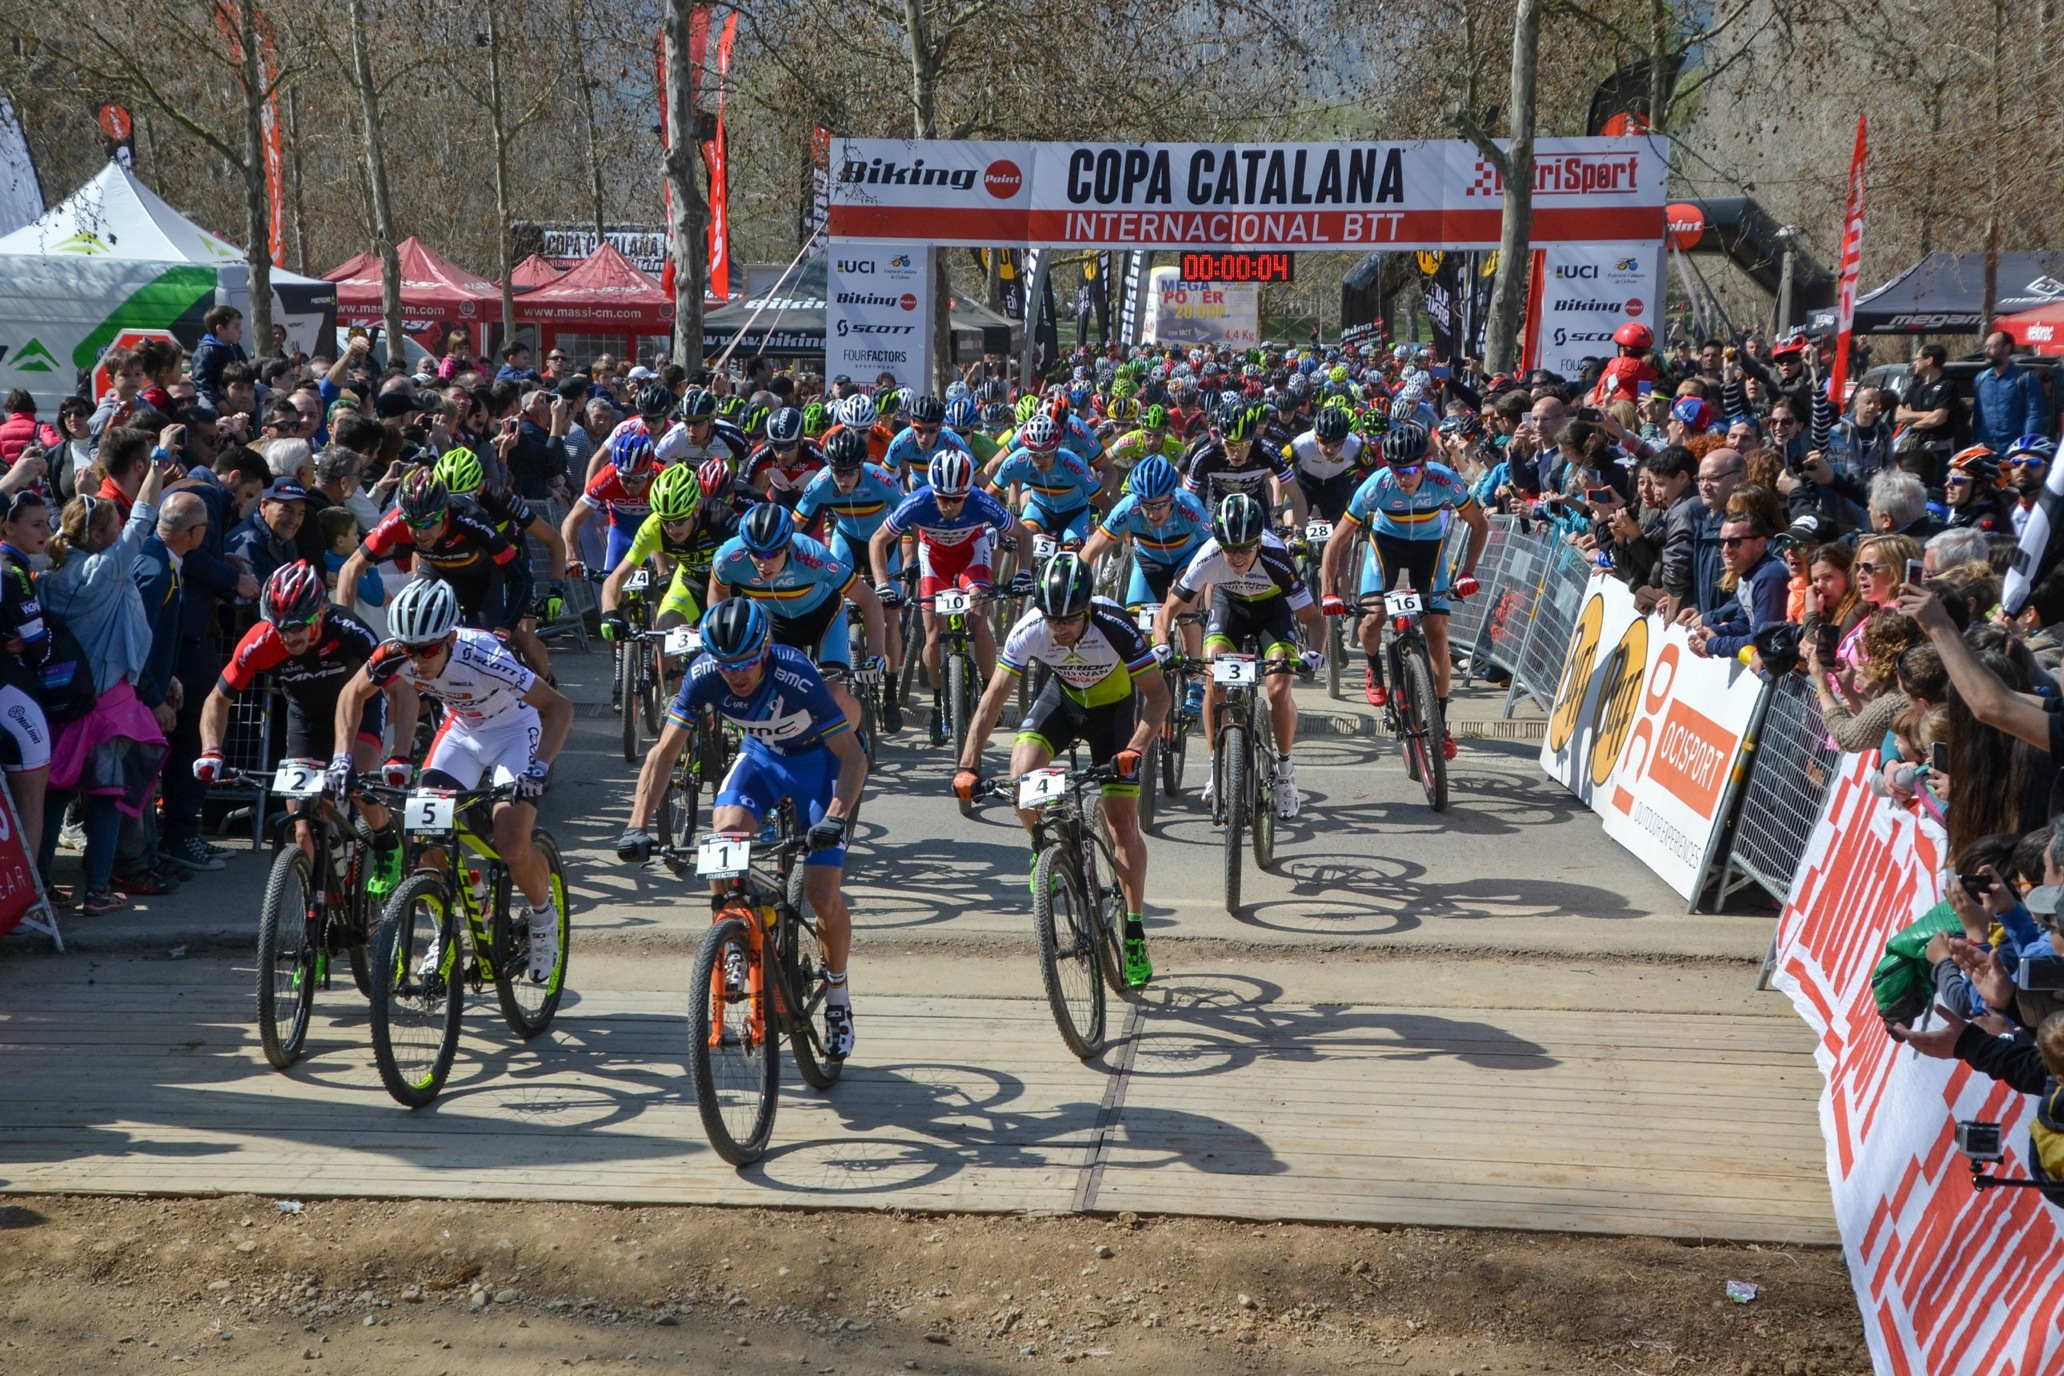 Victor Koretzky y Githa Michiels ganan una espectacular Copa Catalana Internacional Biking Point de Banyoles